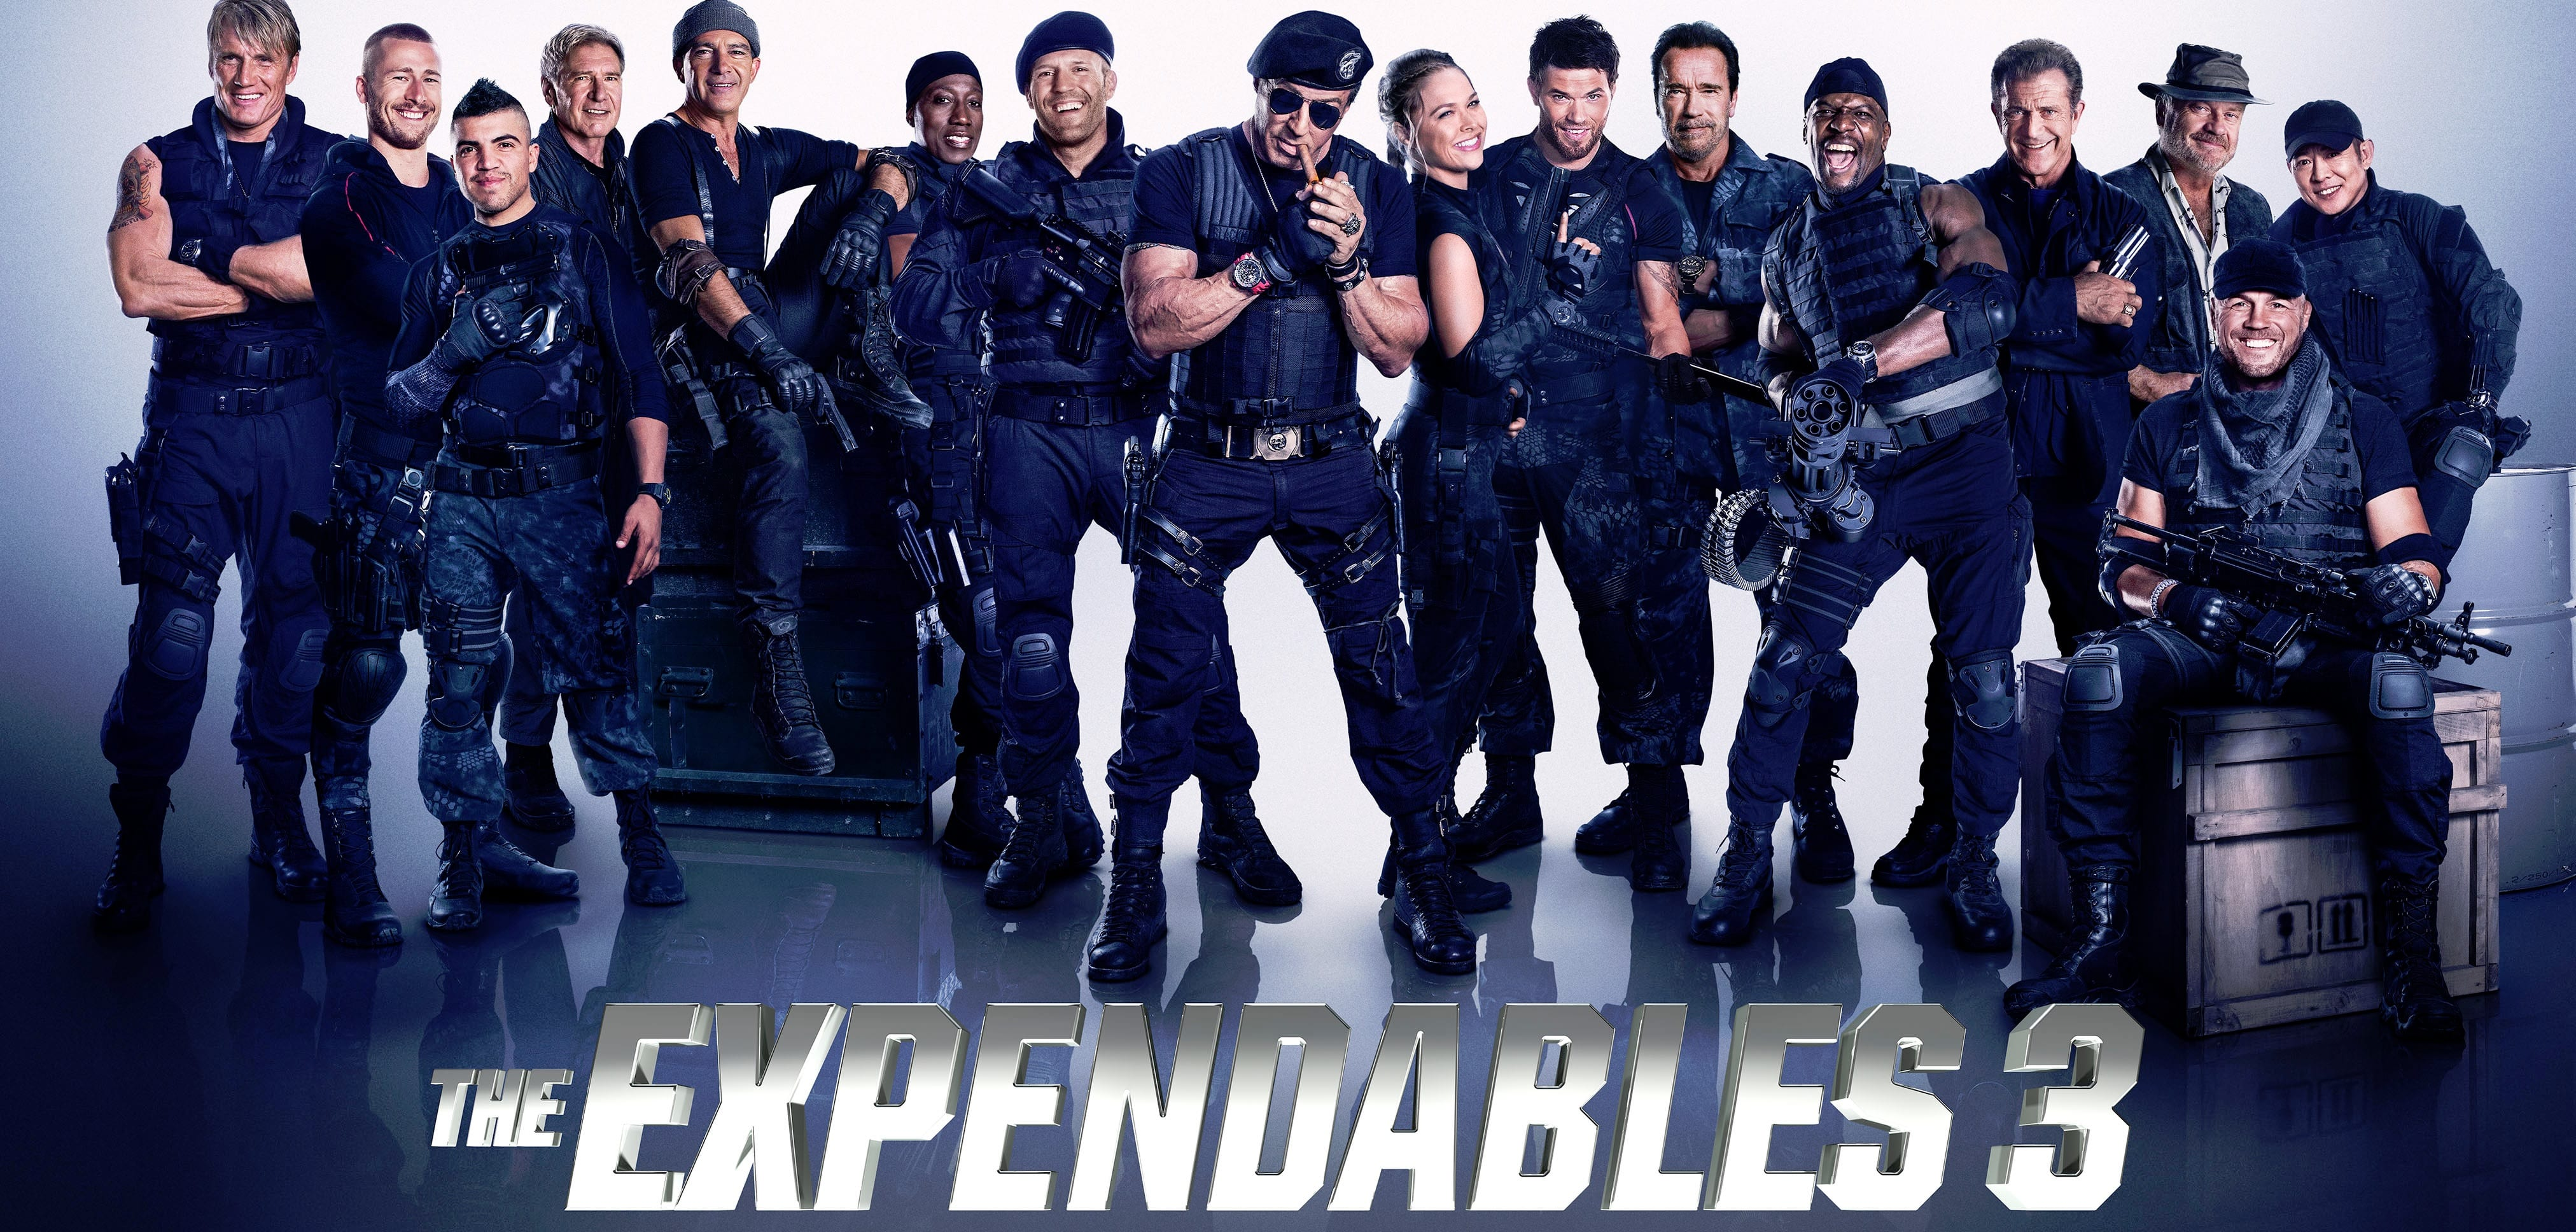 The Expendables 3 Pictures